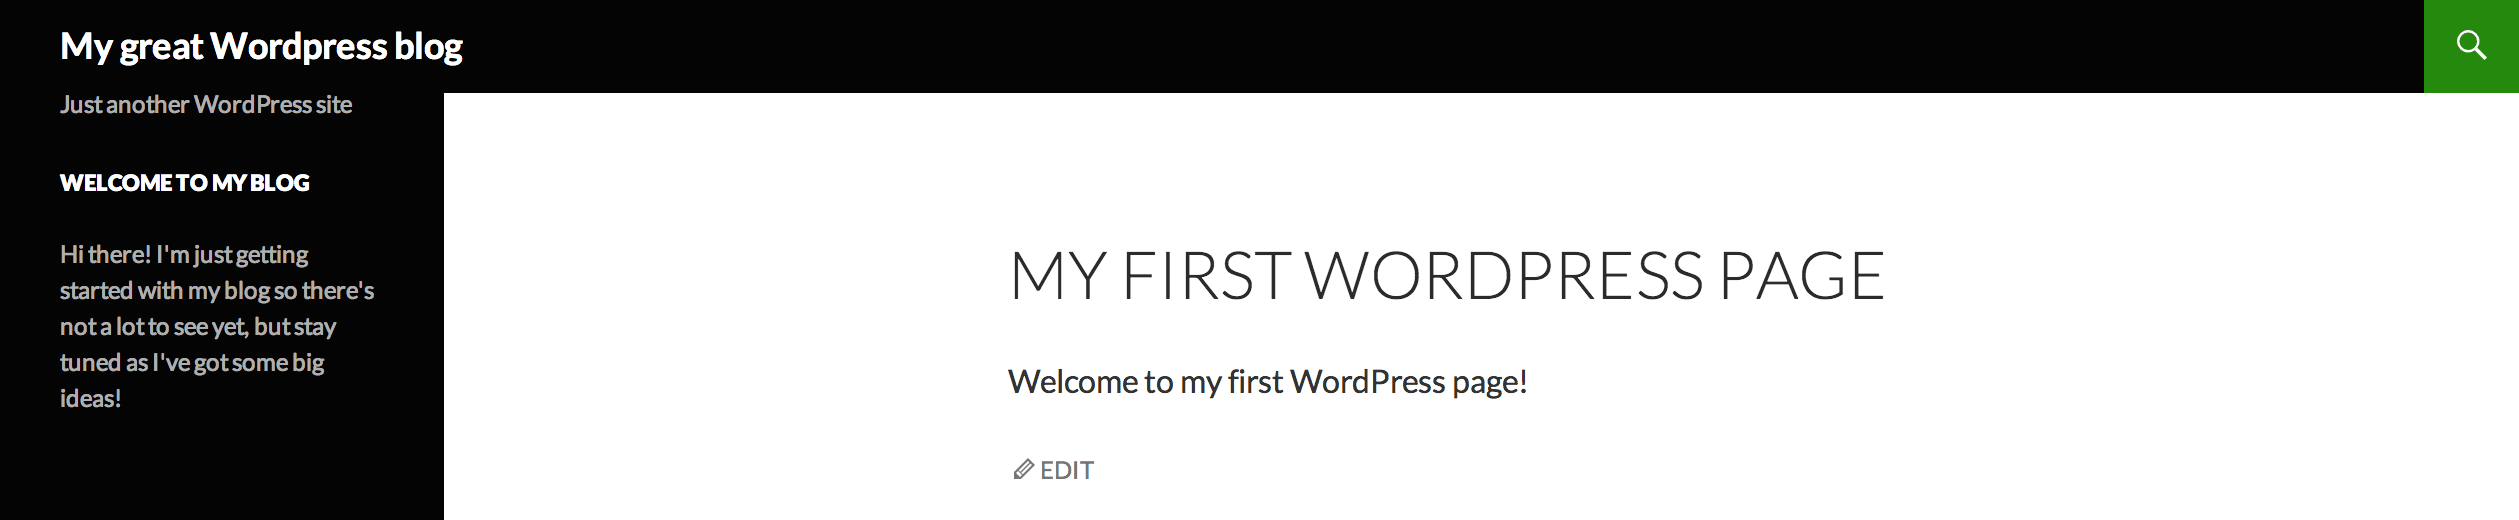 My First WordPress Page